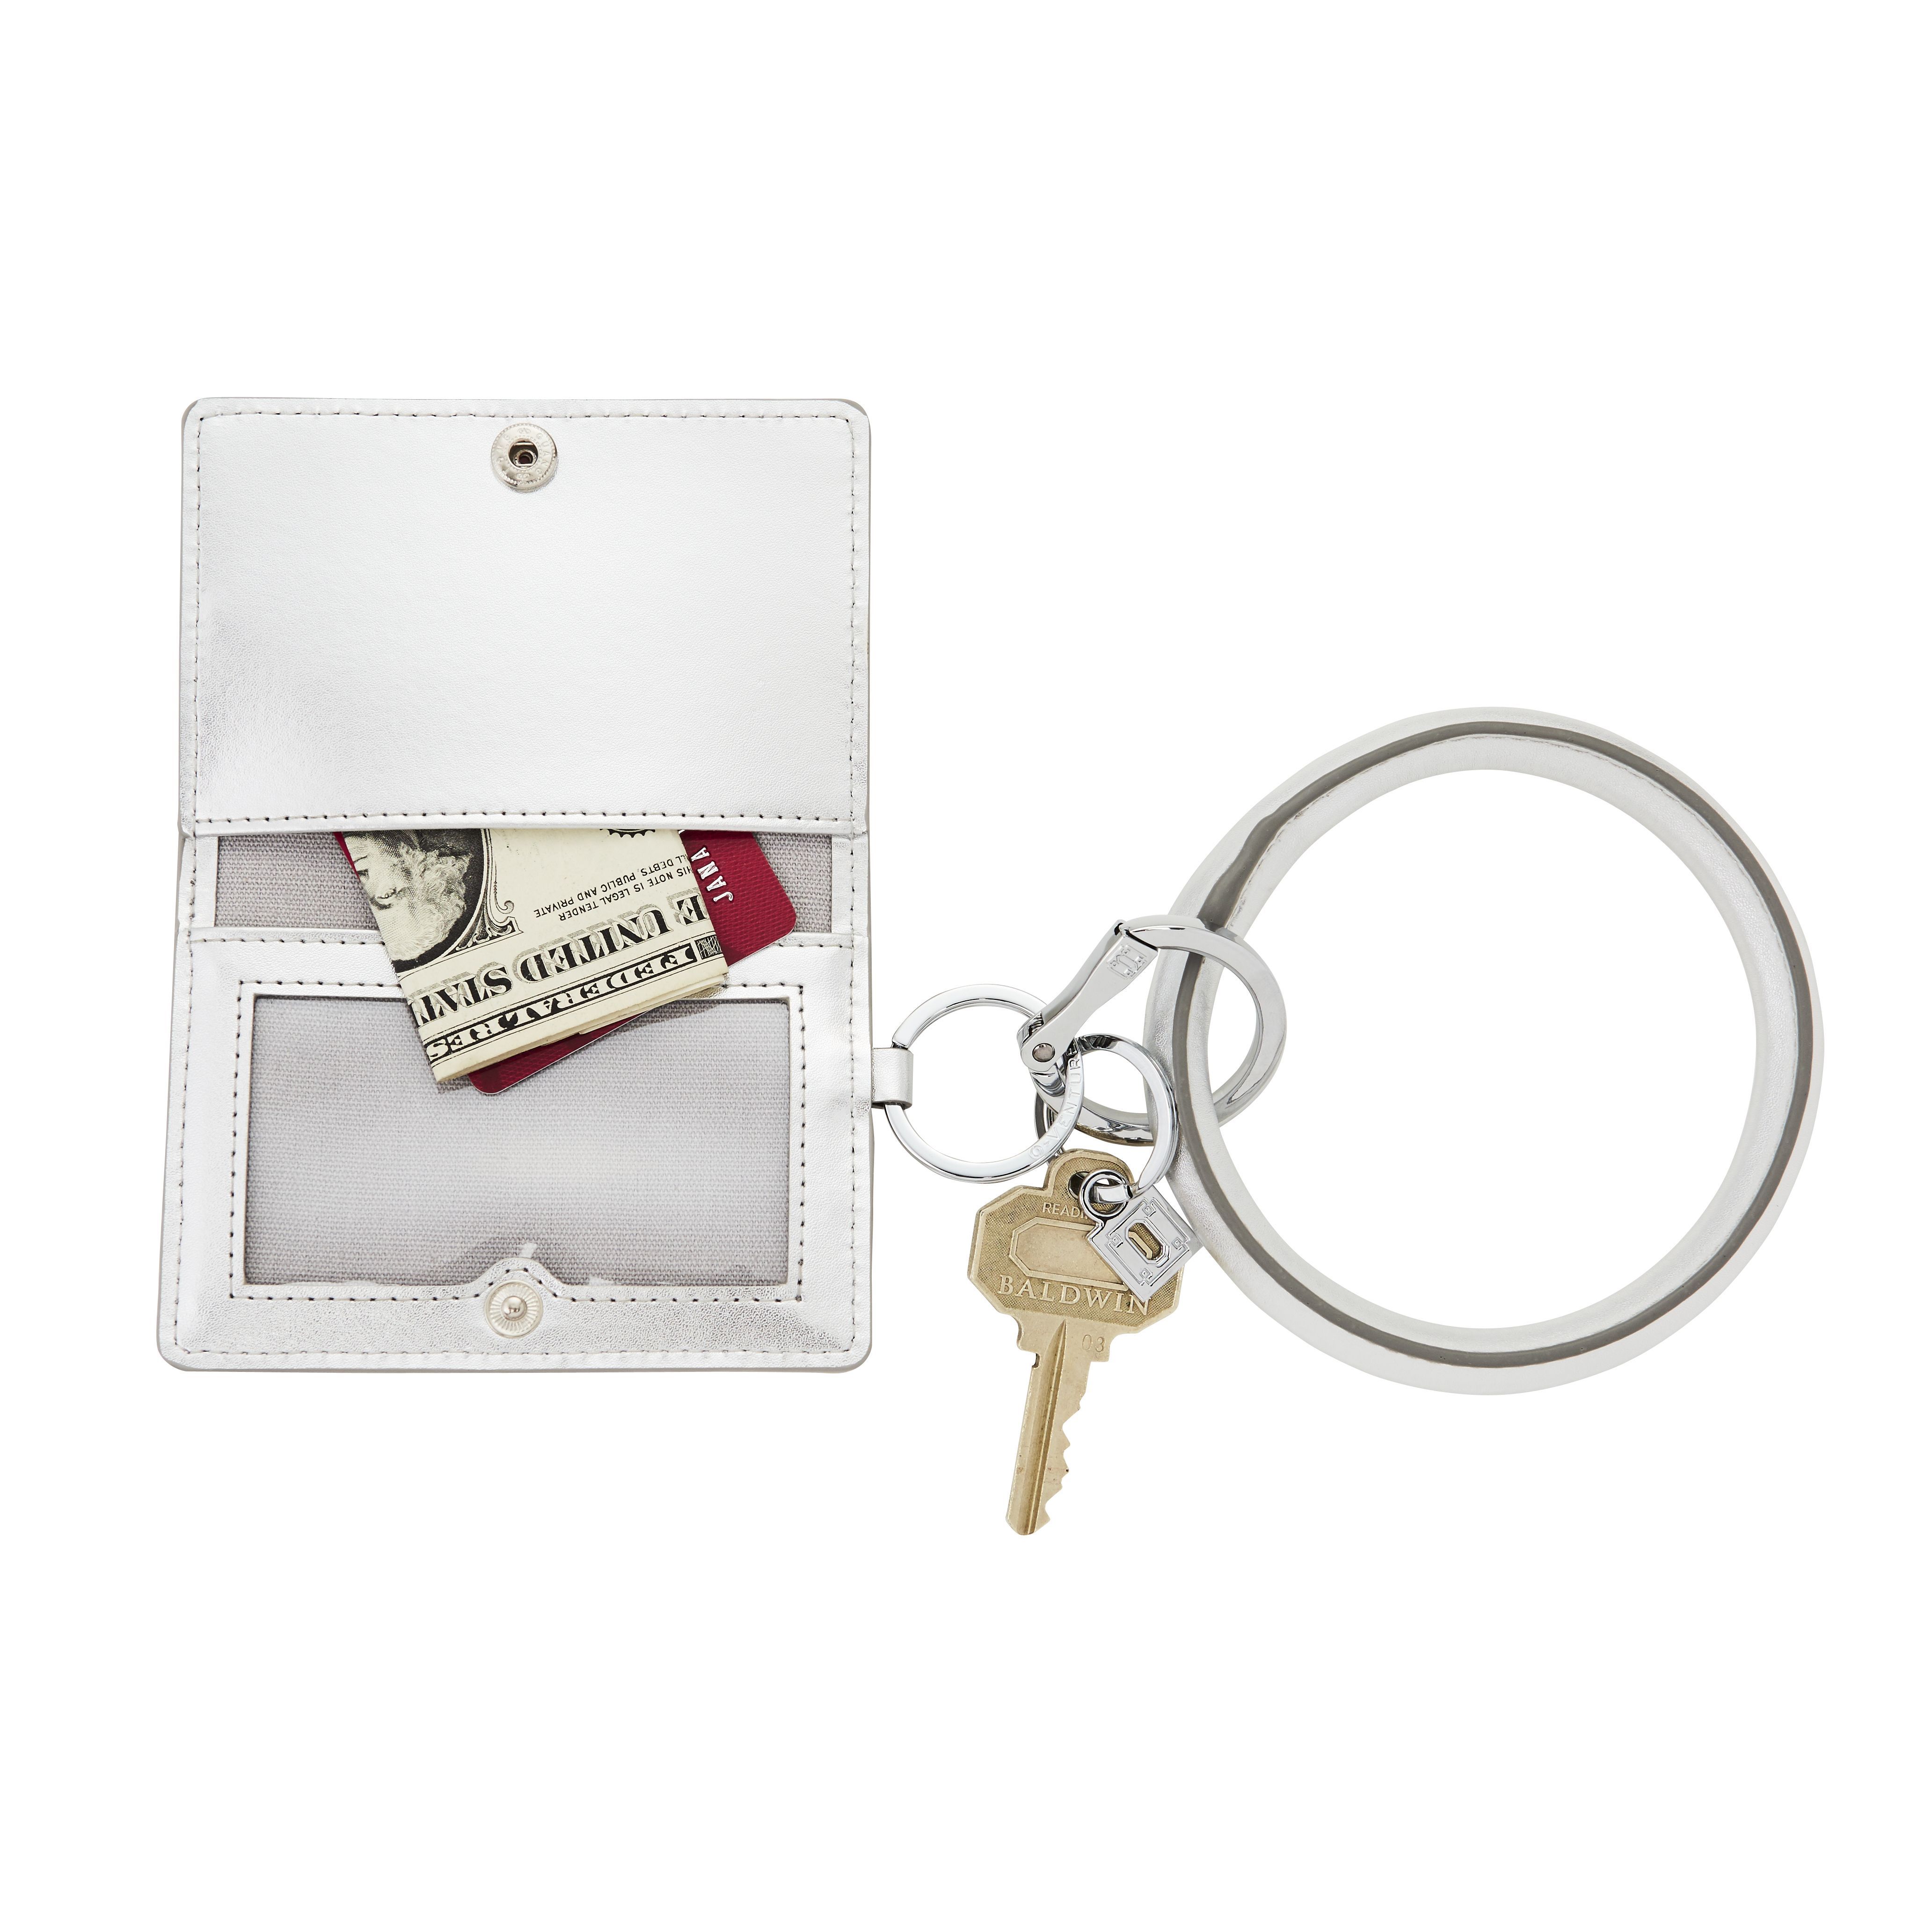 6a2a1b27d42b O-venture white Big O Key Ring and pouch / card case - Best Christmas Gifts  2017, key holders and key rings - Oprah's favorite product of 2014